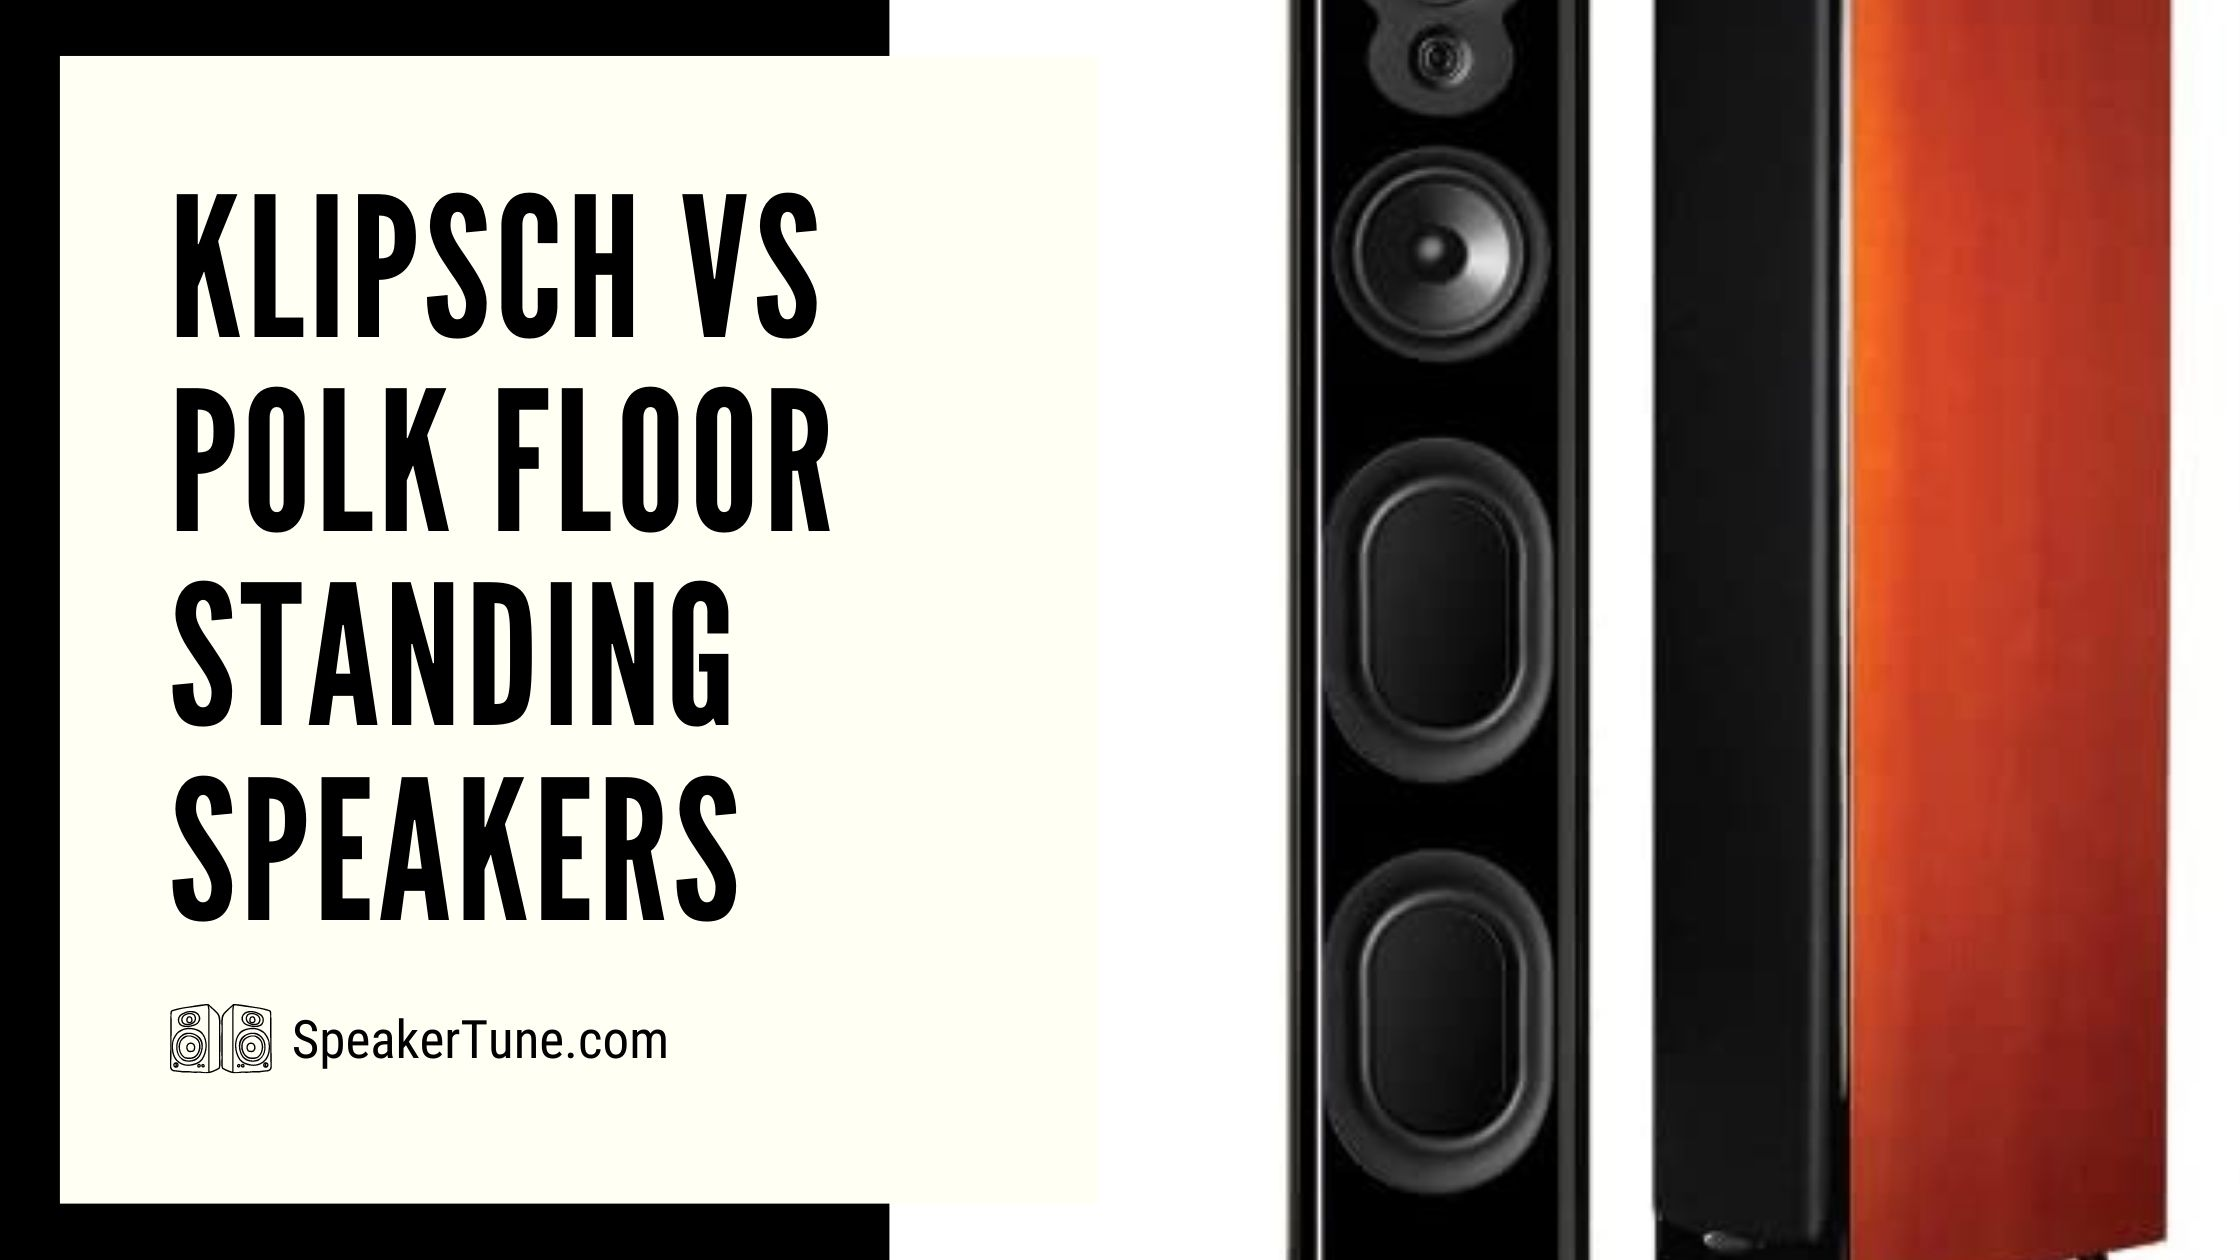 ST-Klipsch-vs-Polk-floor-standing-speakers